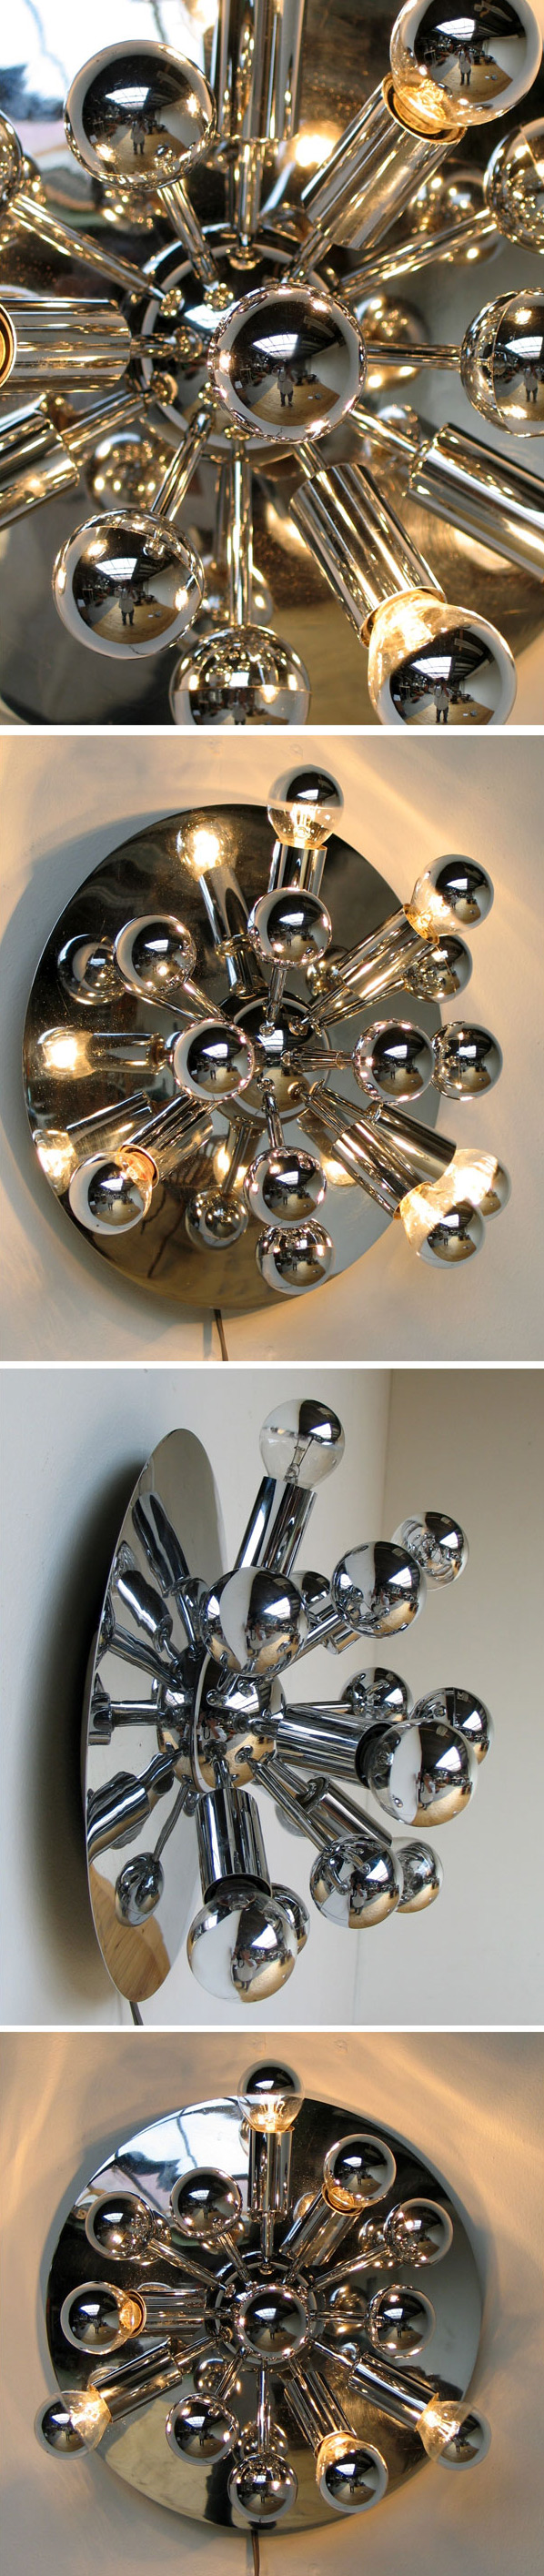 Small Space age chrome Sputnik ceiling lamp Panton eames era Large